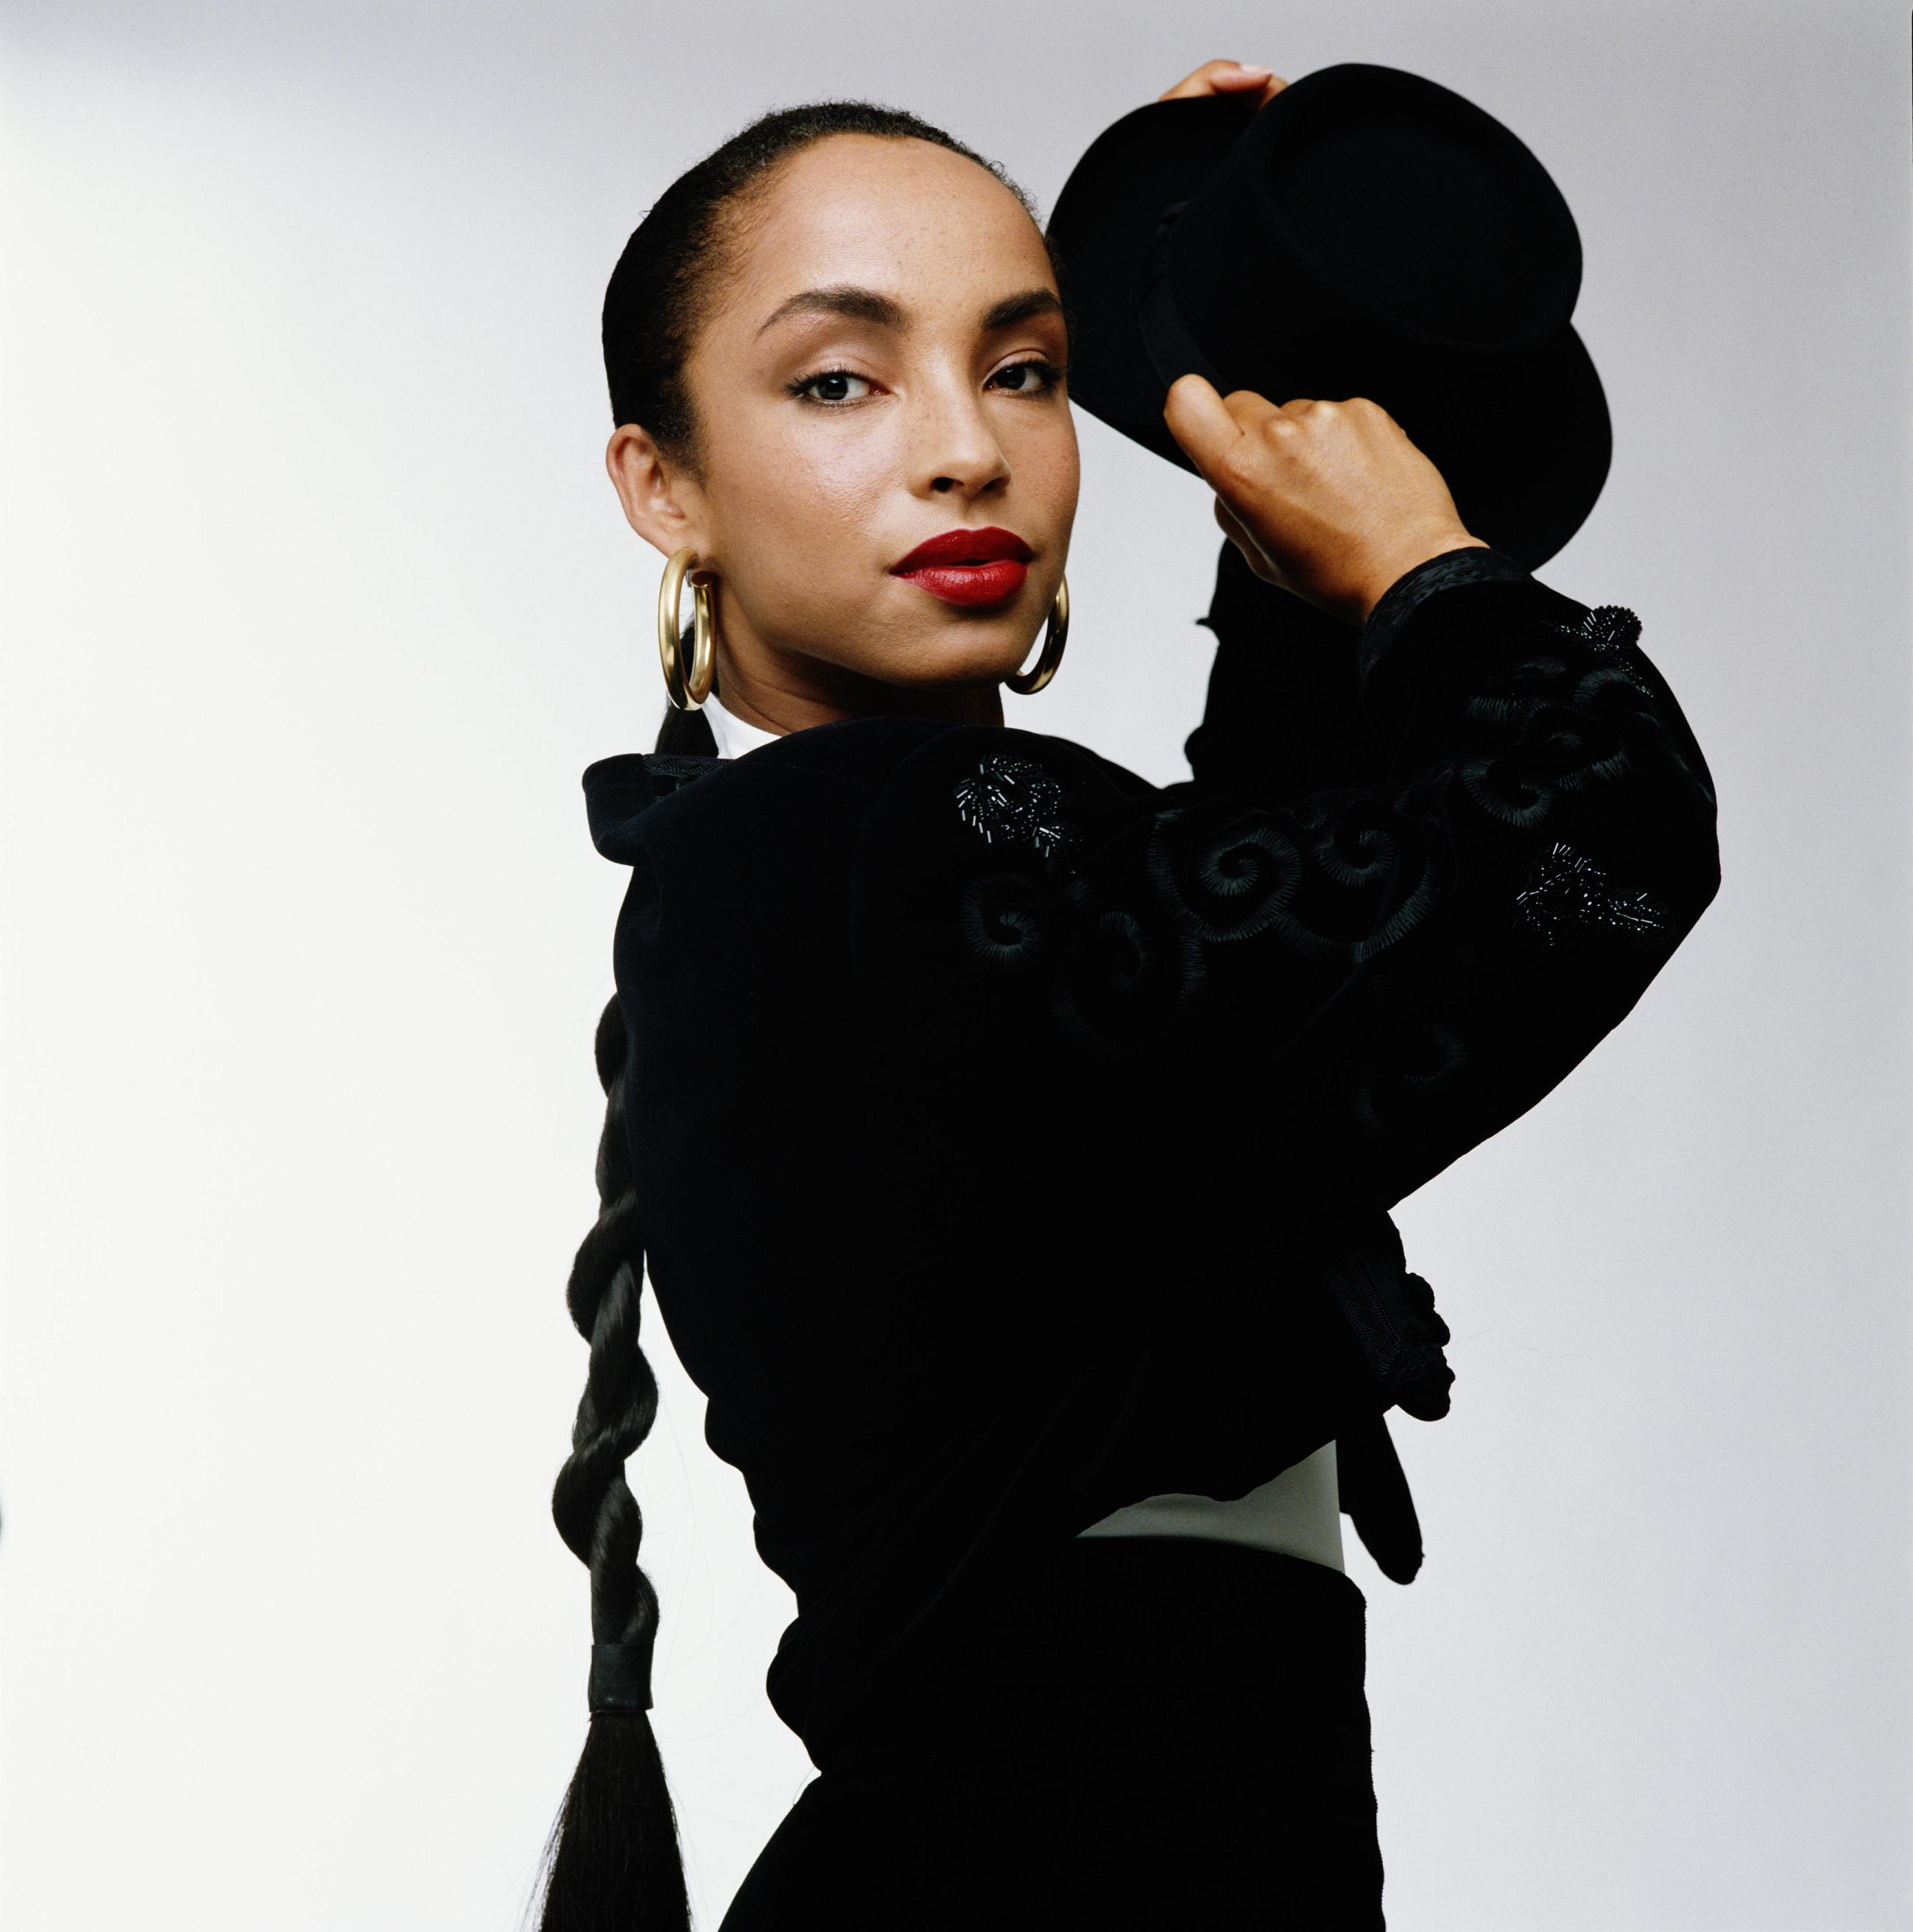 Sade photo, pics, wallpaper - photo #